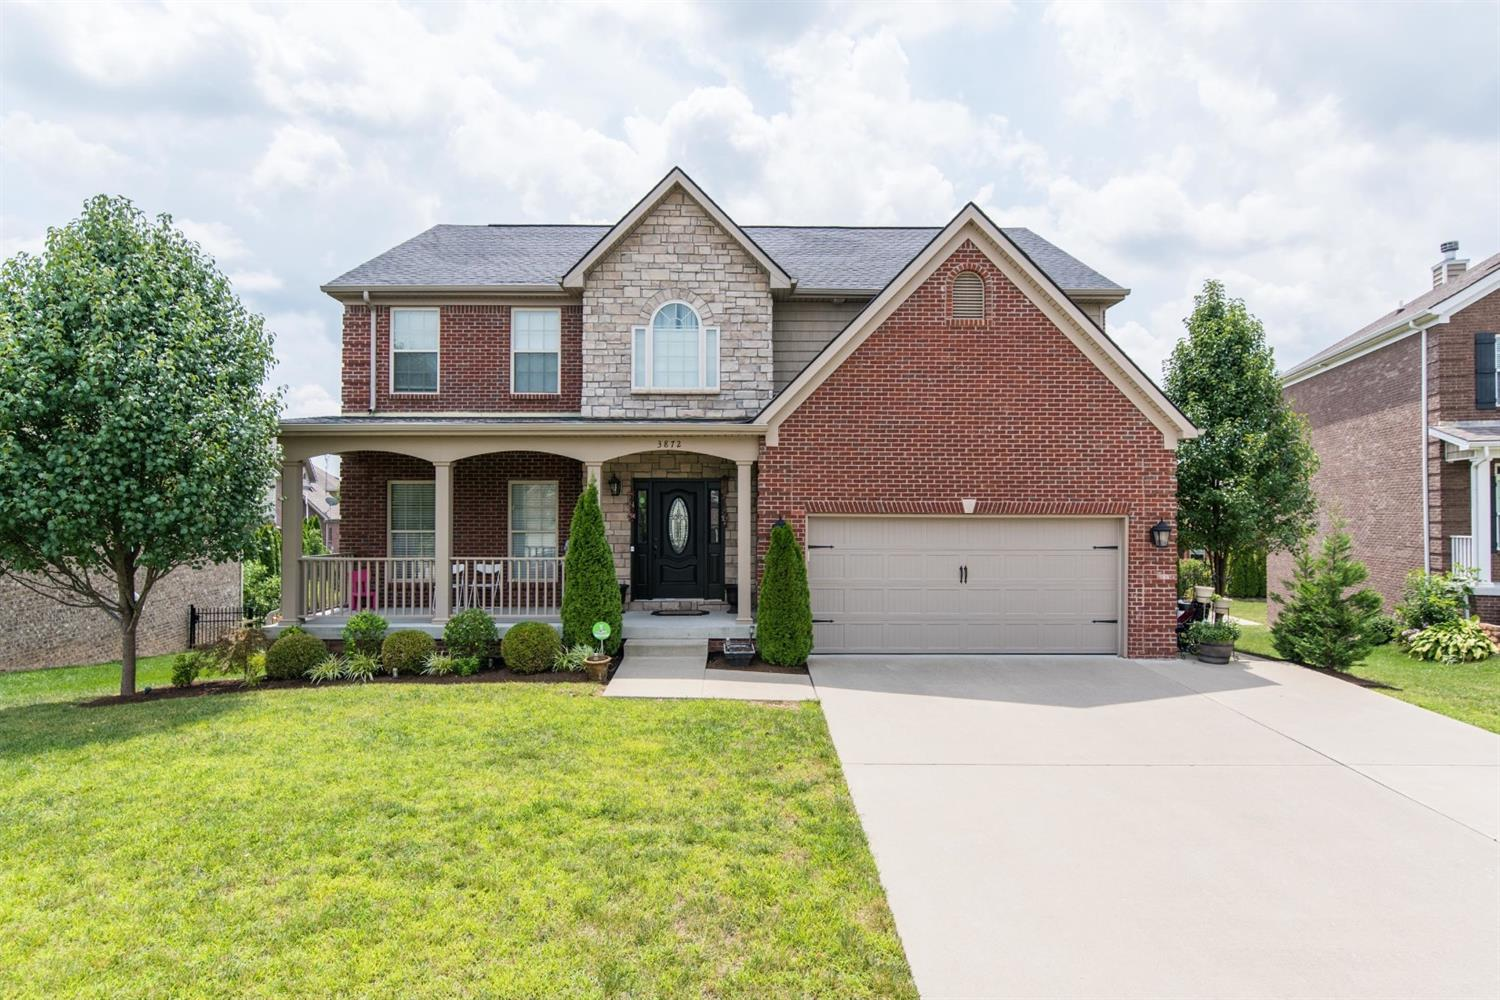 3872 Leighton Lane, Lexington, KY 40515